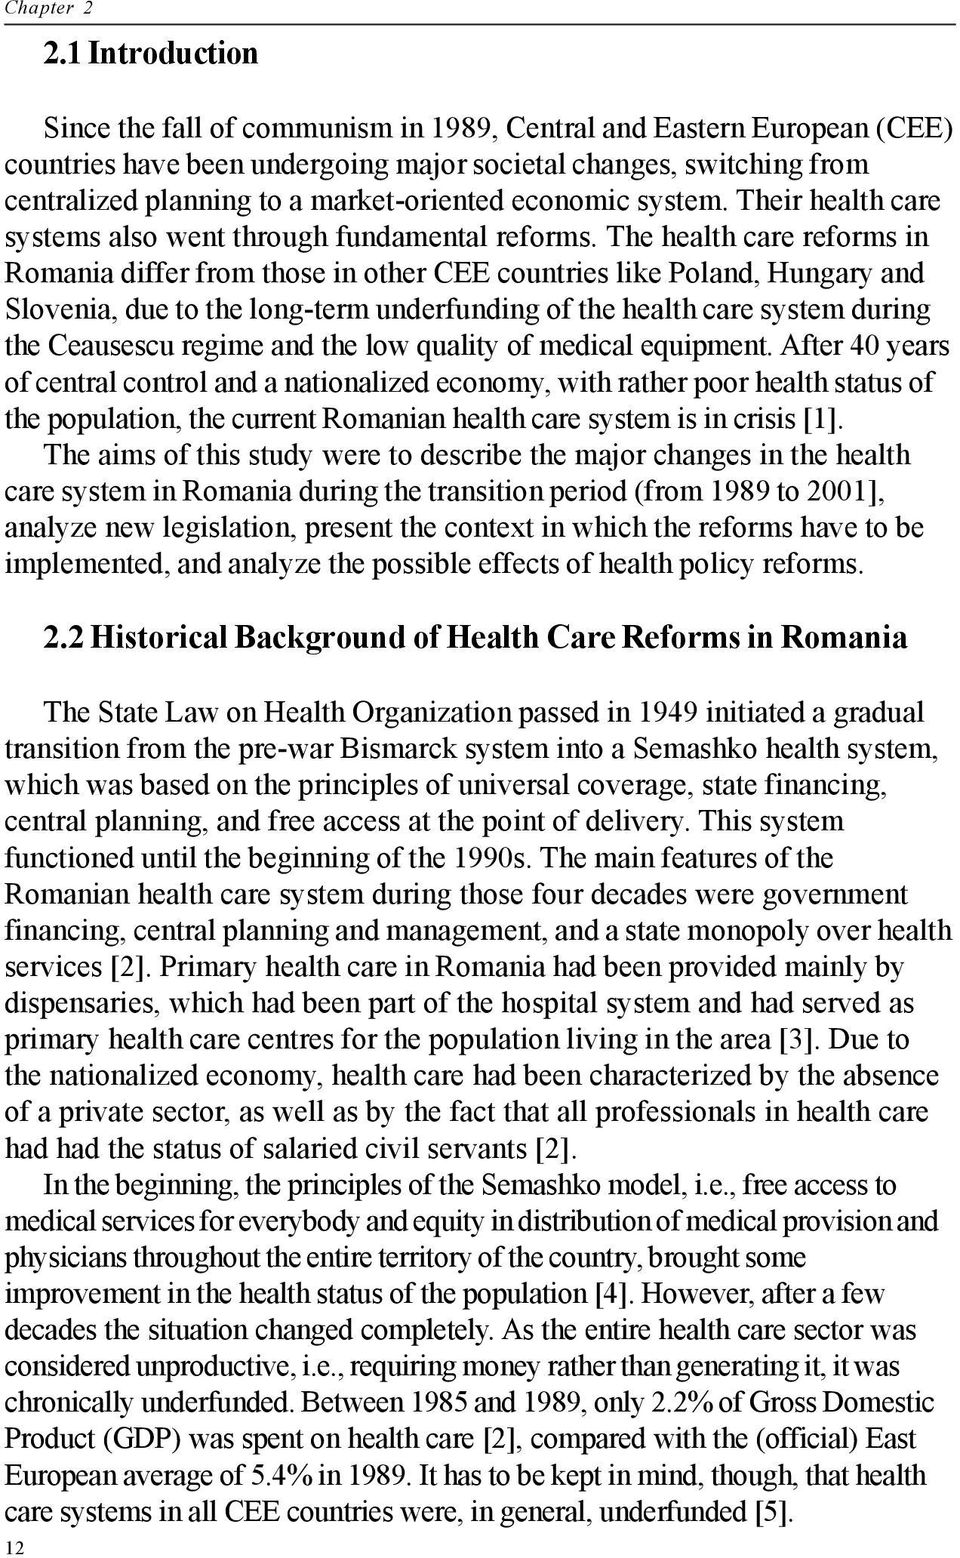 economic system. Their health care systems also went through fundamental reforms.